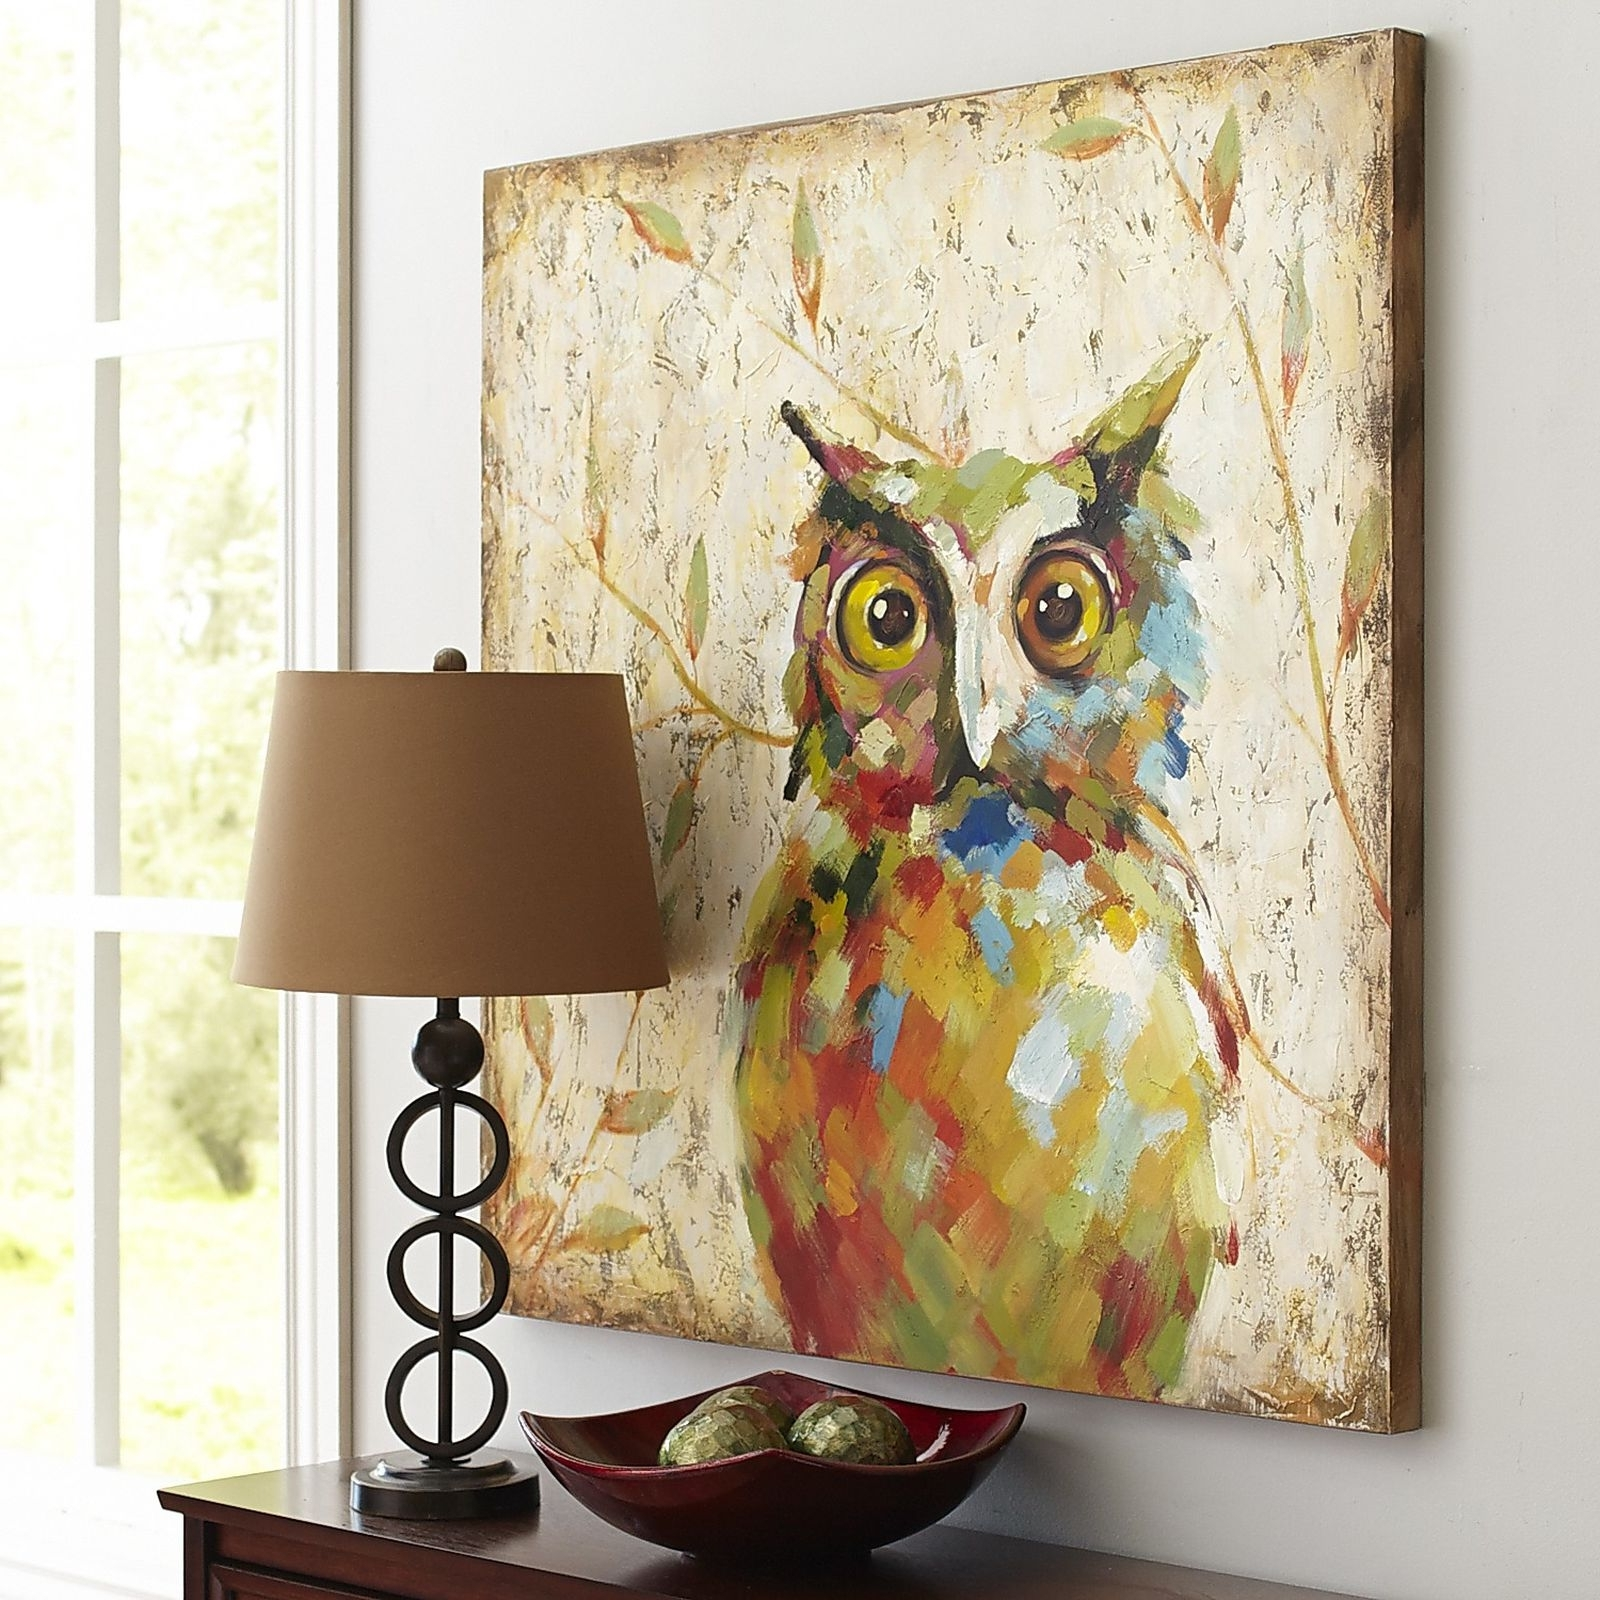 Owl Art, Owl And Paintings (View 14 of 15)